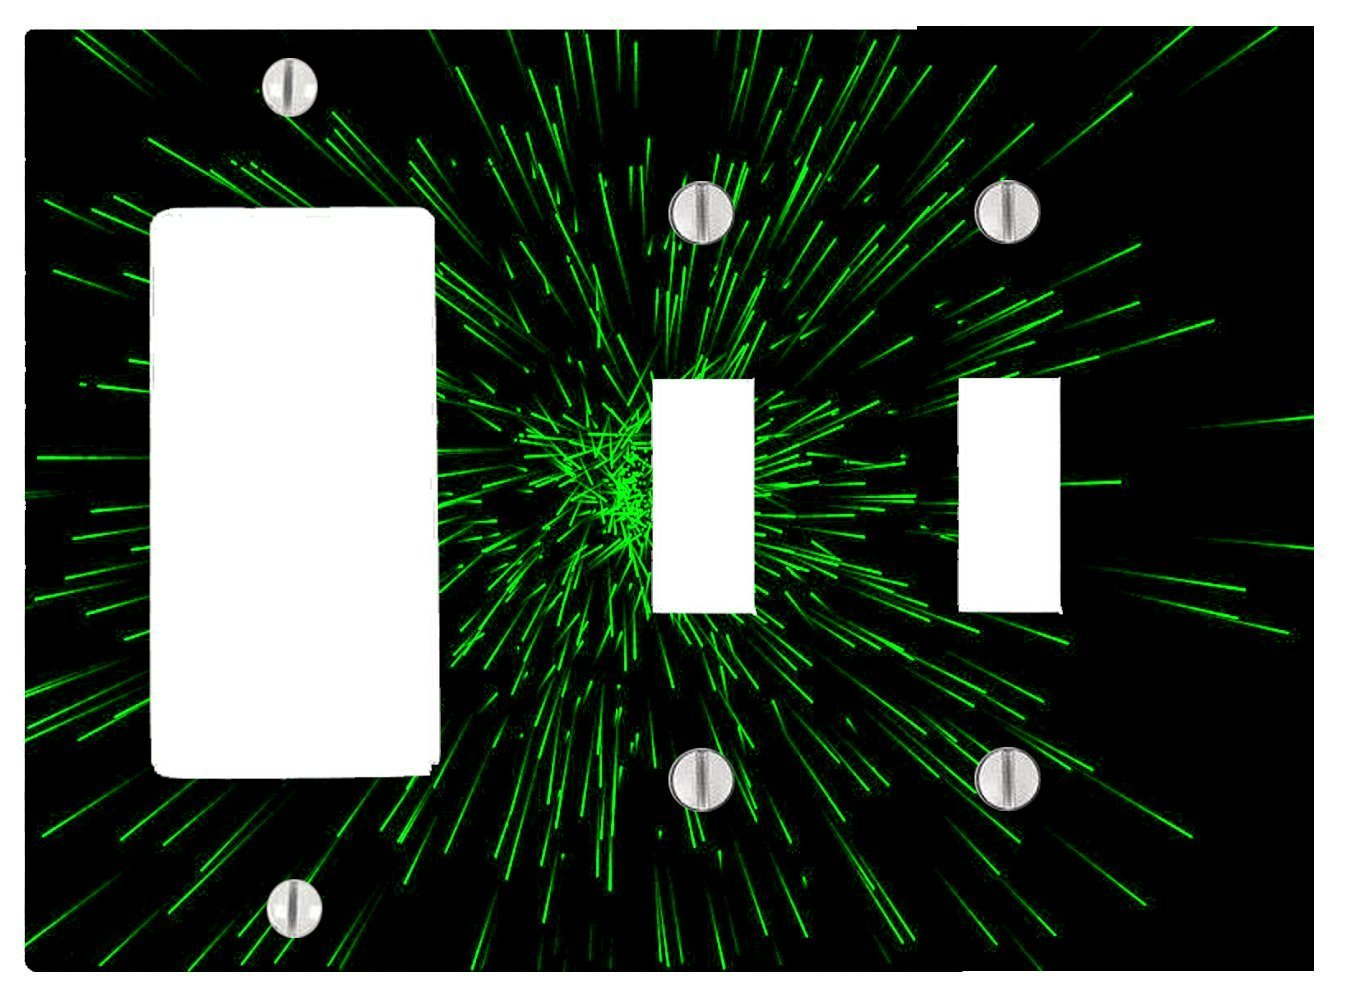 Bright Green Particles Green Light Speed in Space 3 Gang, 2 Toggle, 1 Dimmer, Decorator Electrical Switch Wall Plate (6.56 x 4.69in)